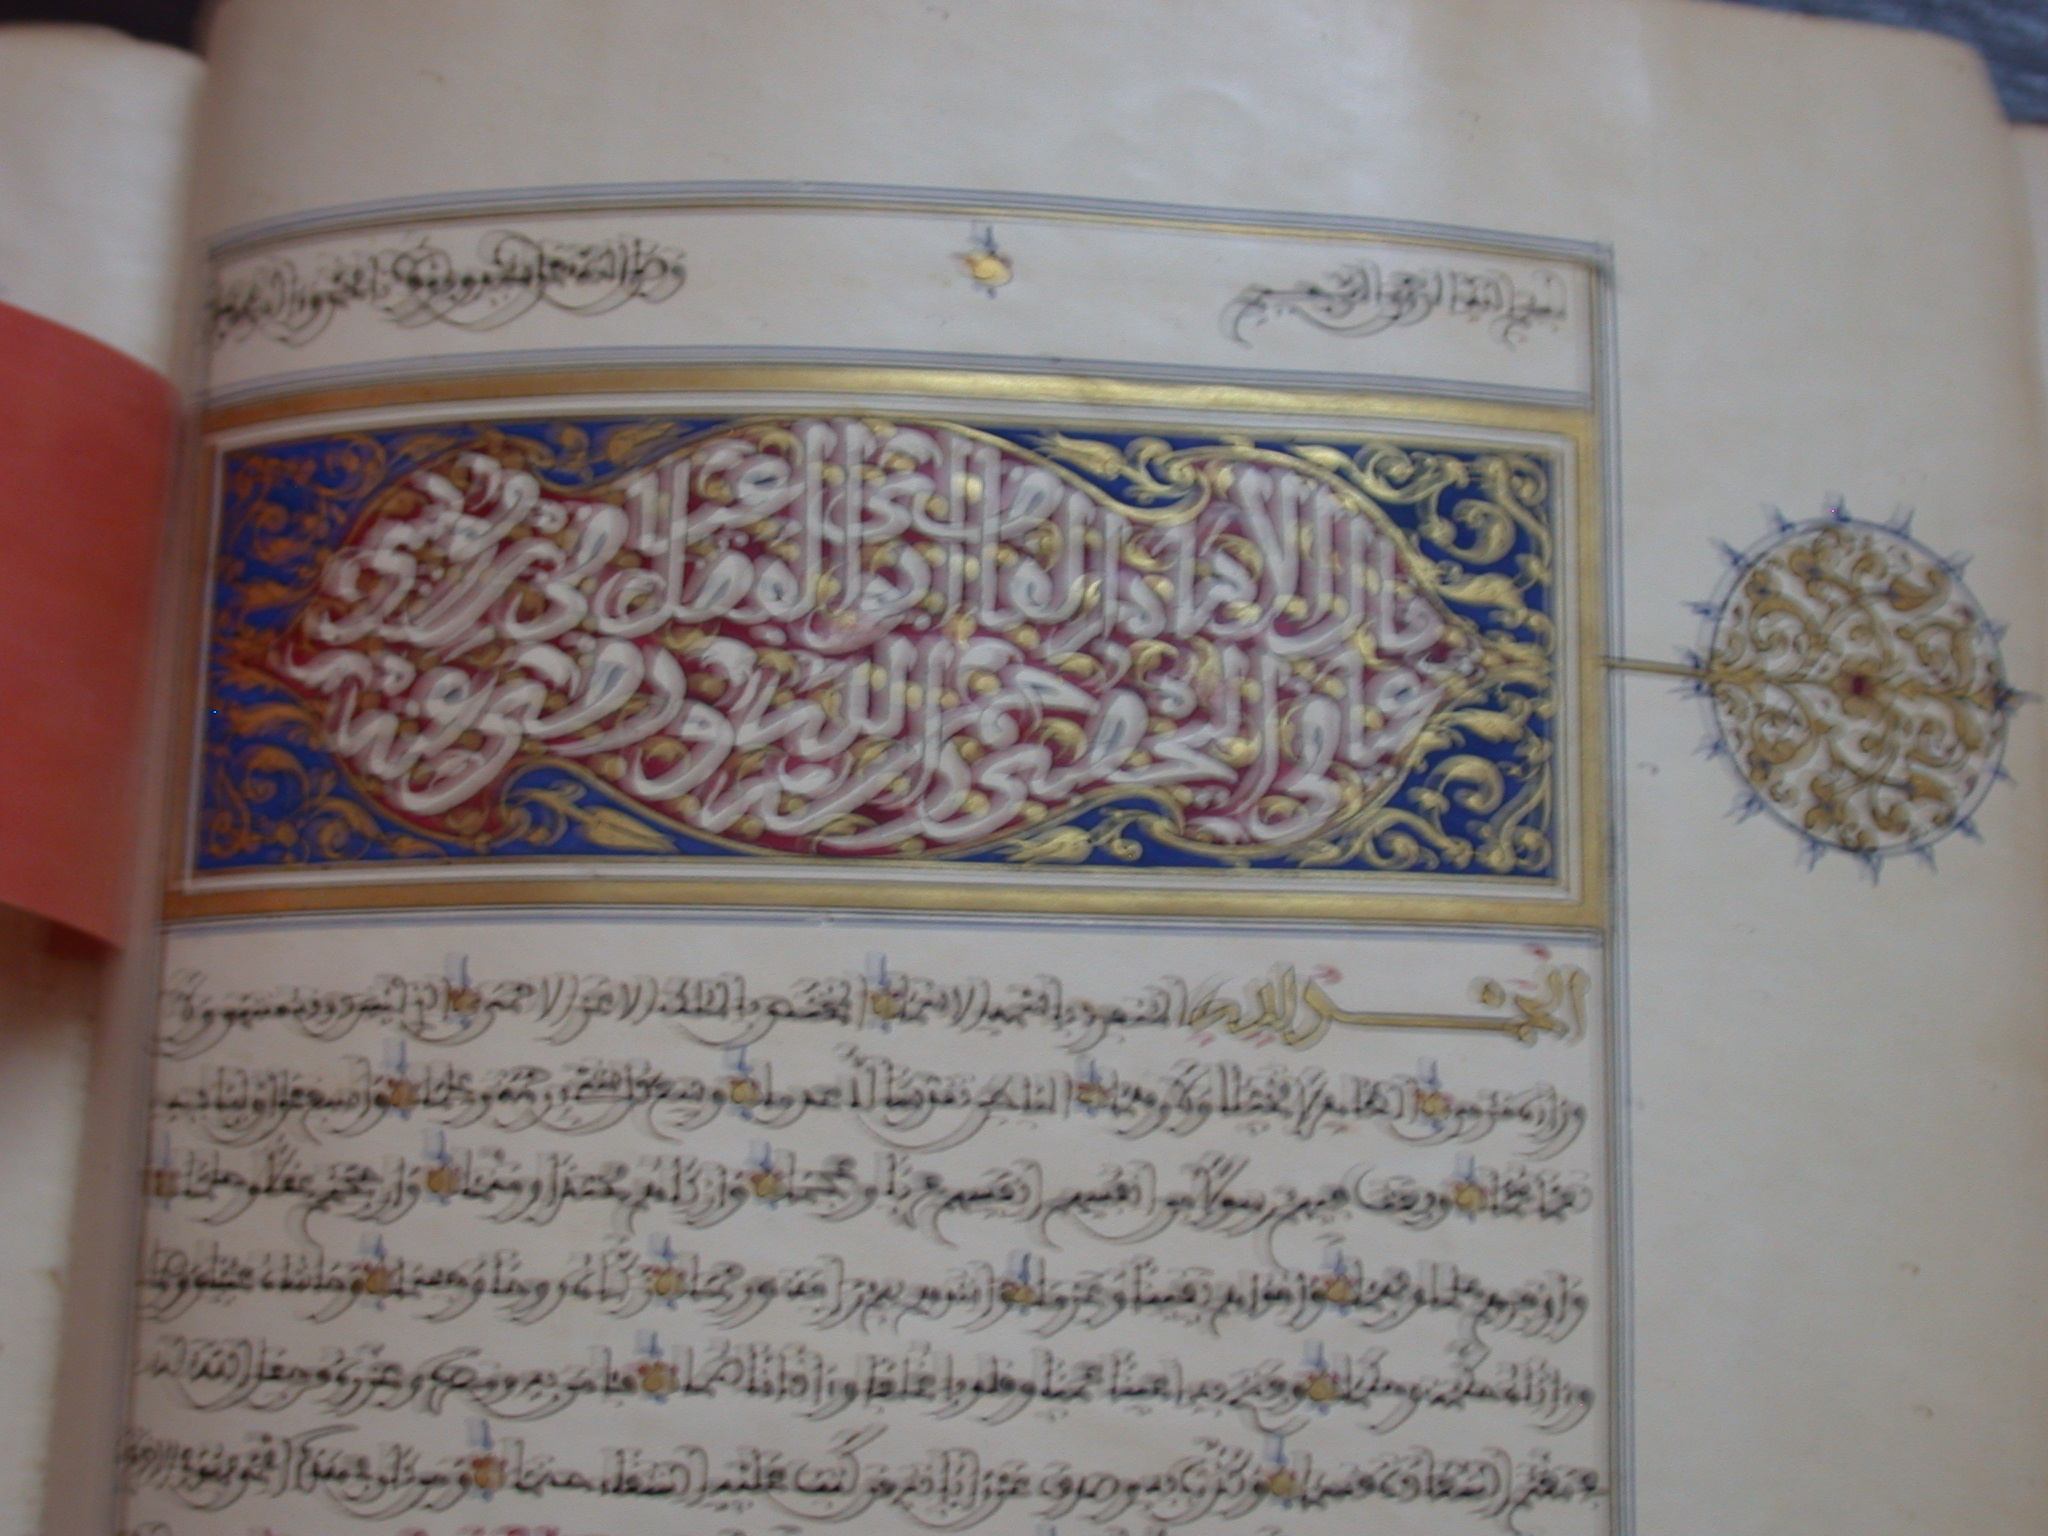 Al Shifa Qadi Alyad, Illuminated Manuscript, Blurry Detail, Manuscript Library, Timbuktu, Mali